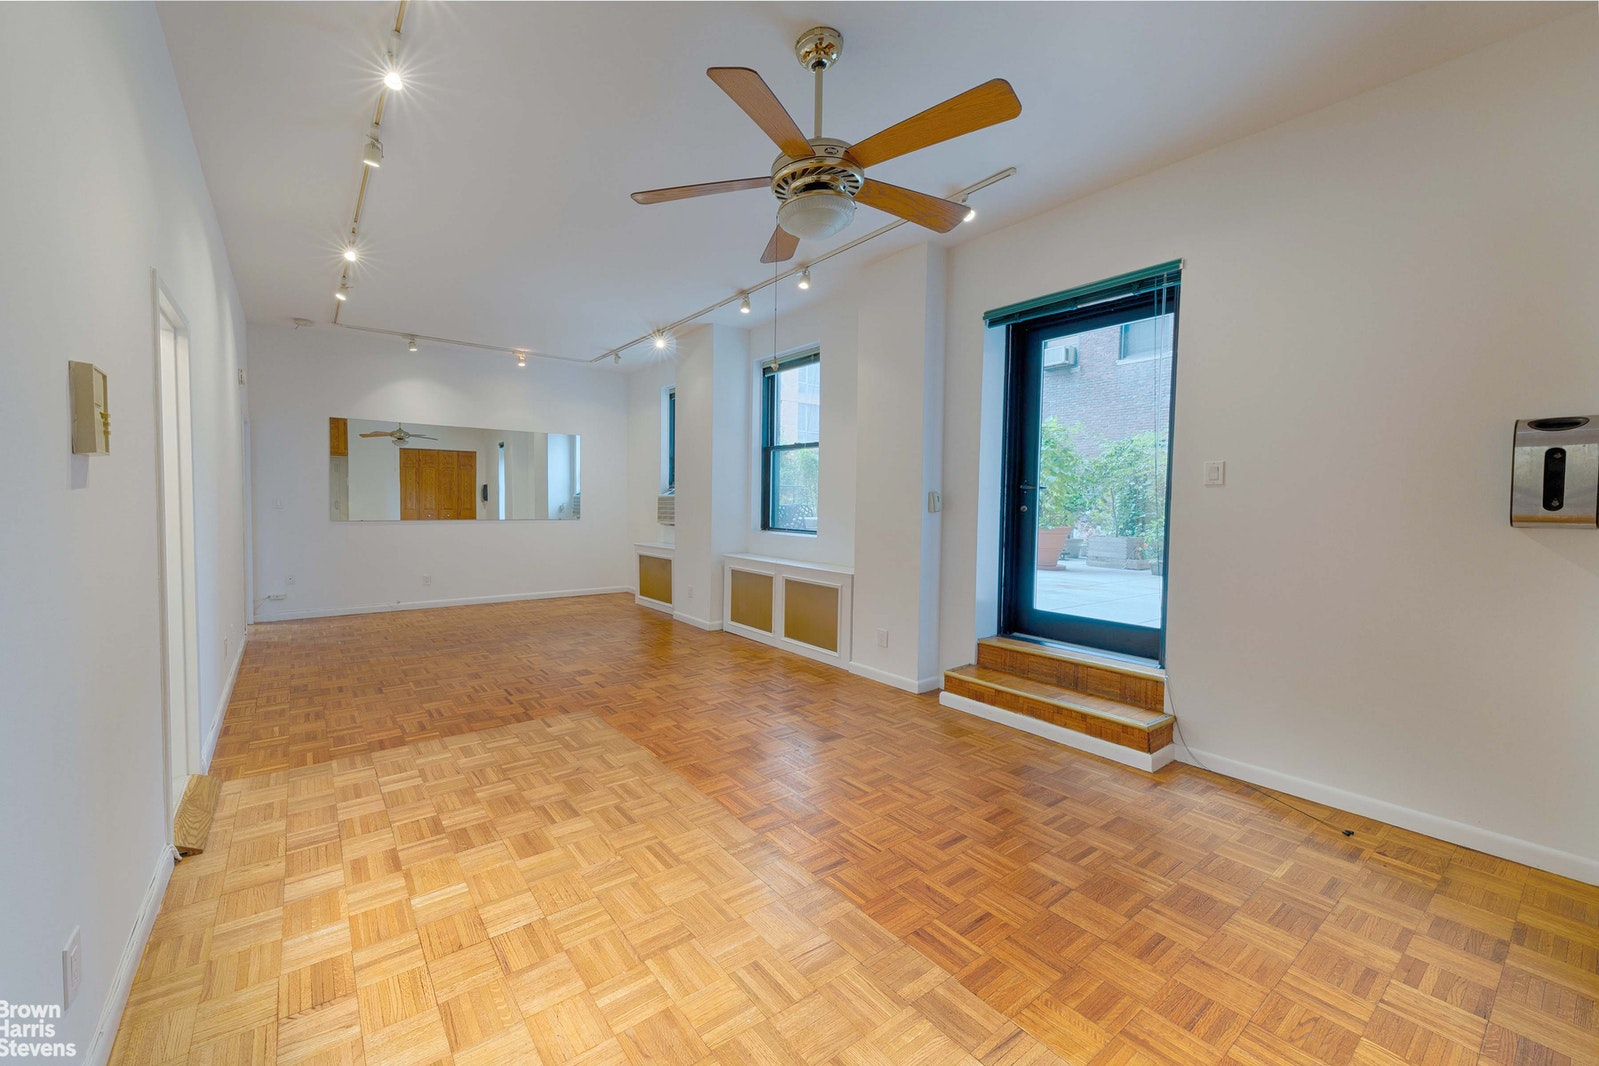 340 West 55th Street 3e, Midtown West, NYC, 10019, $749,000, Property For Sale, Halstead Real Estate, Photo 8